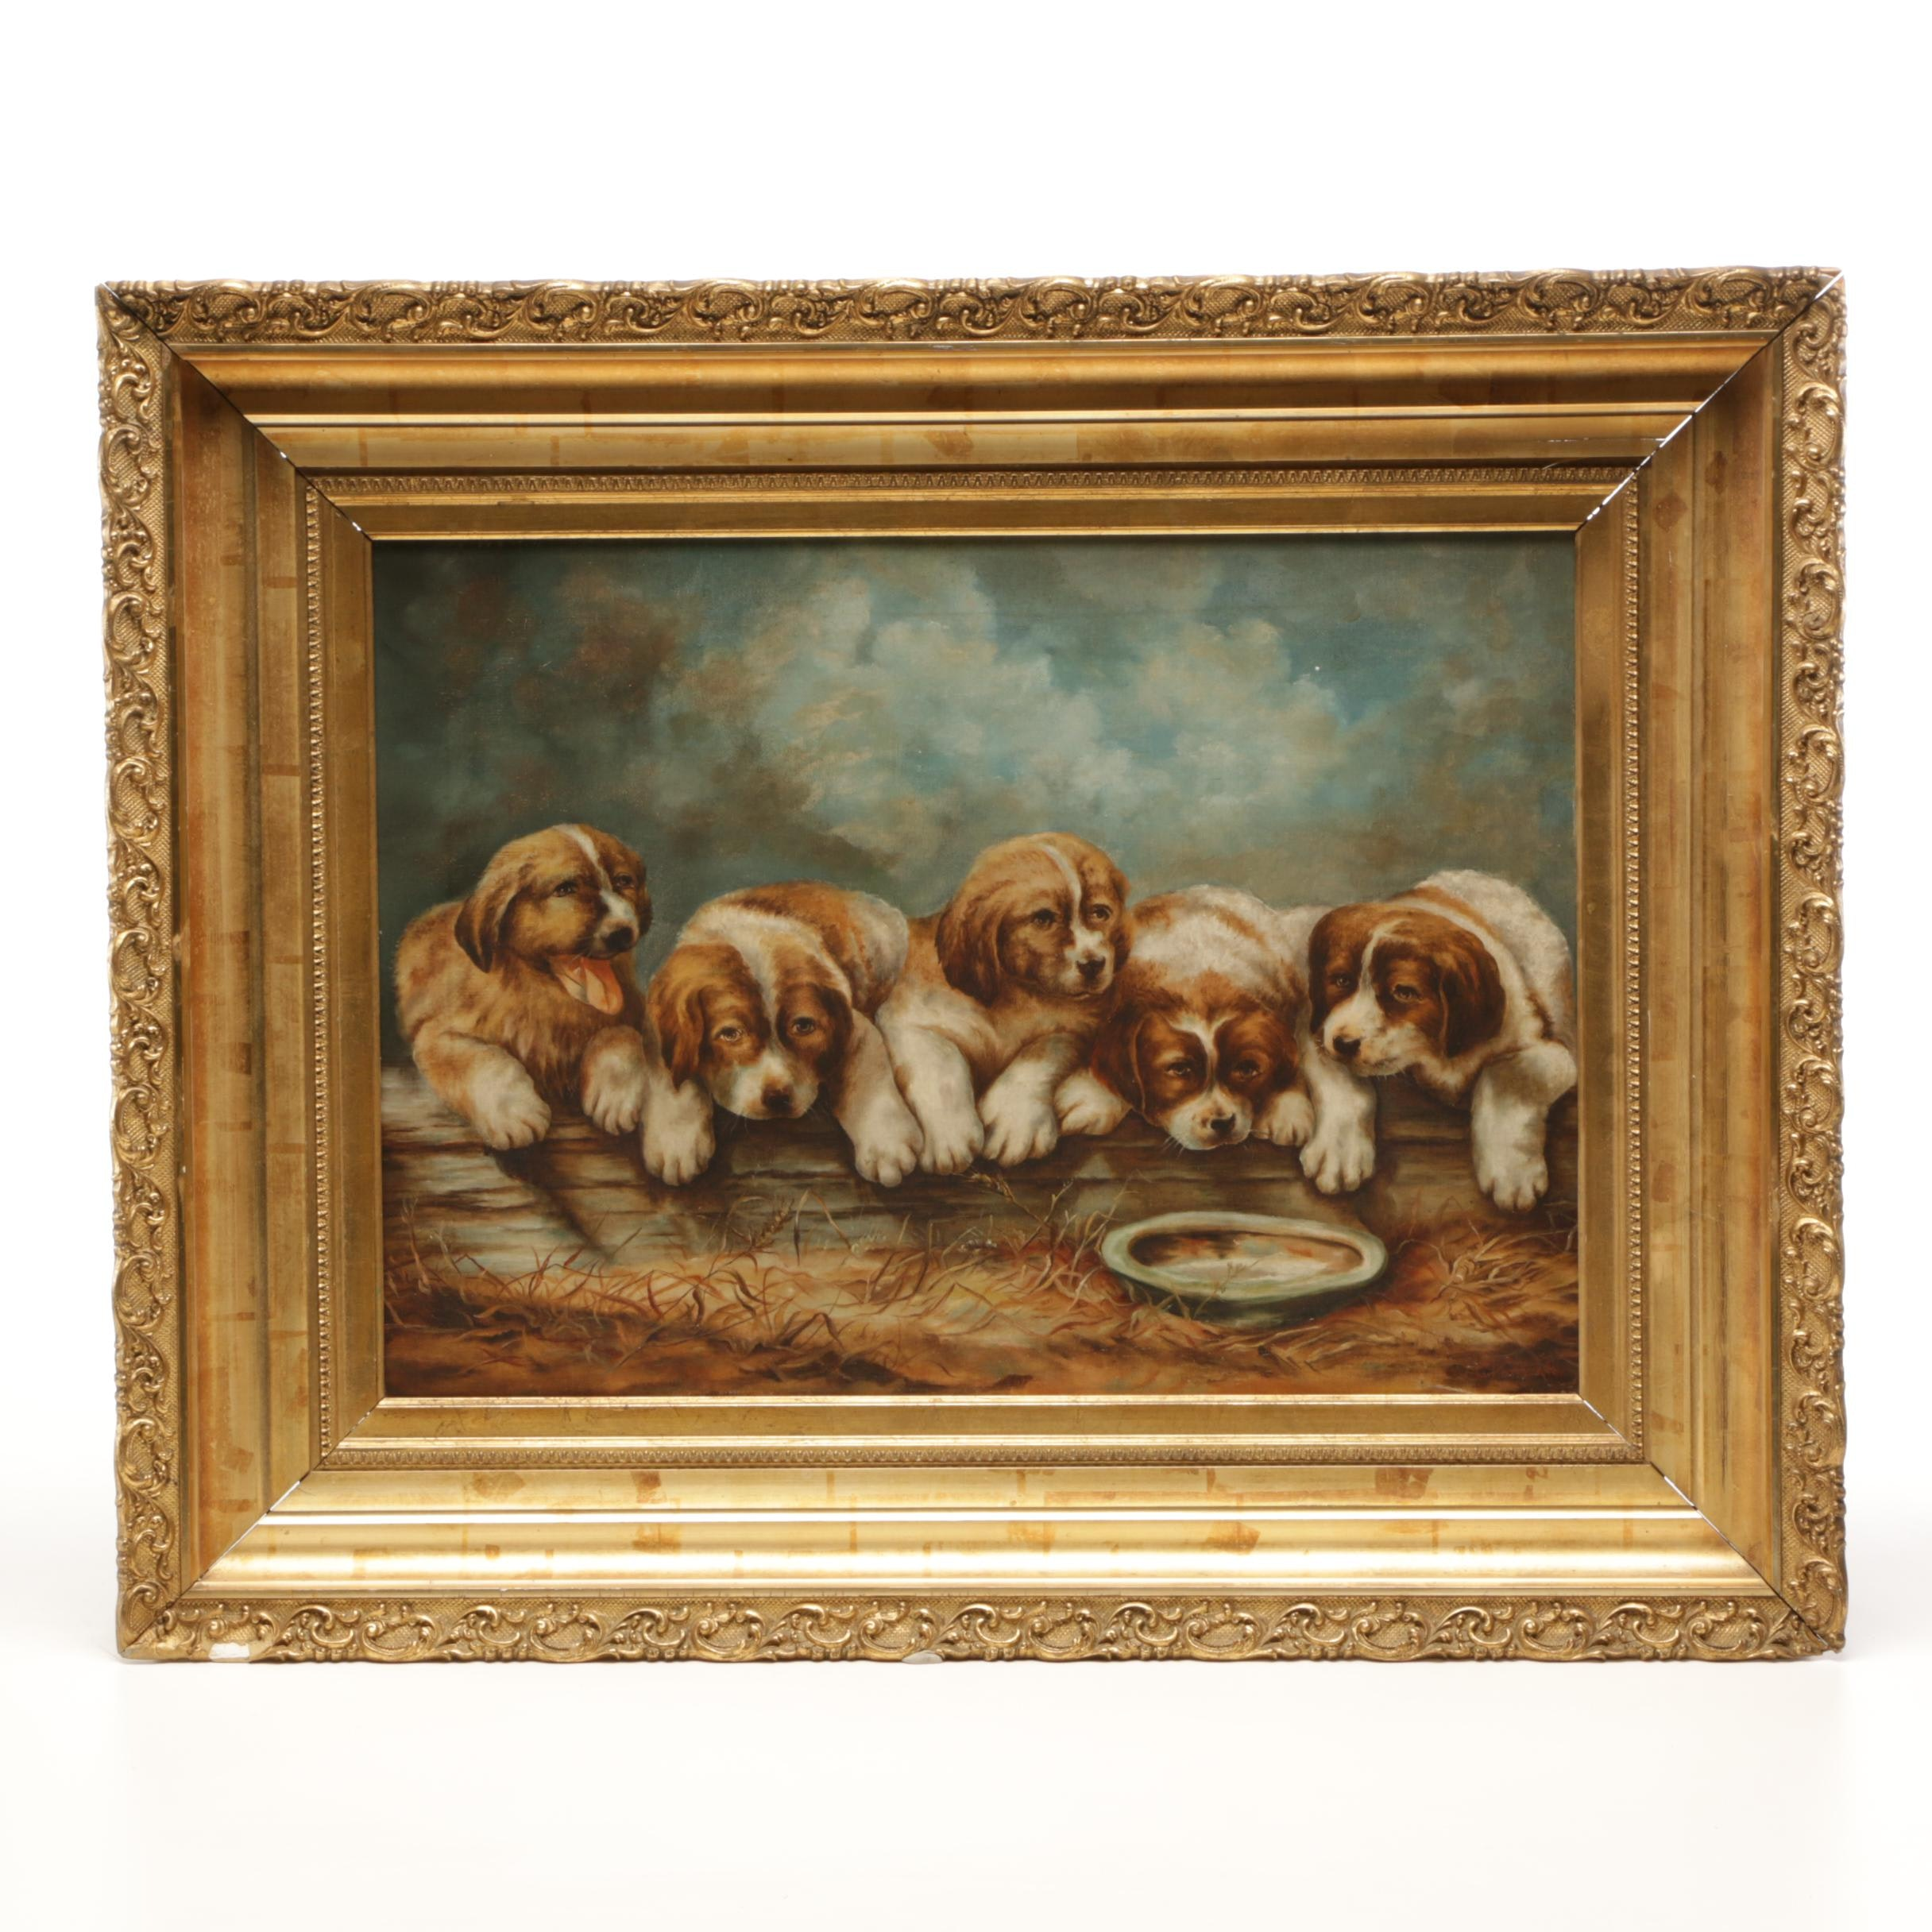 C. Karrington Oil Painting of Five Puppies